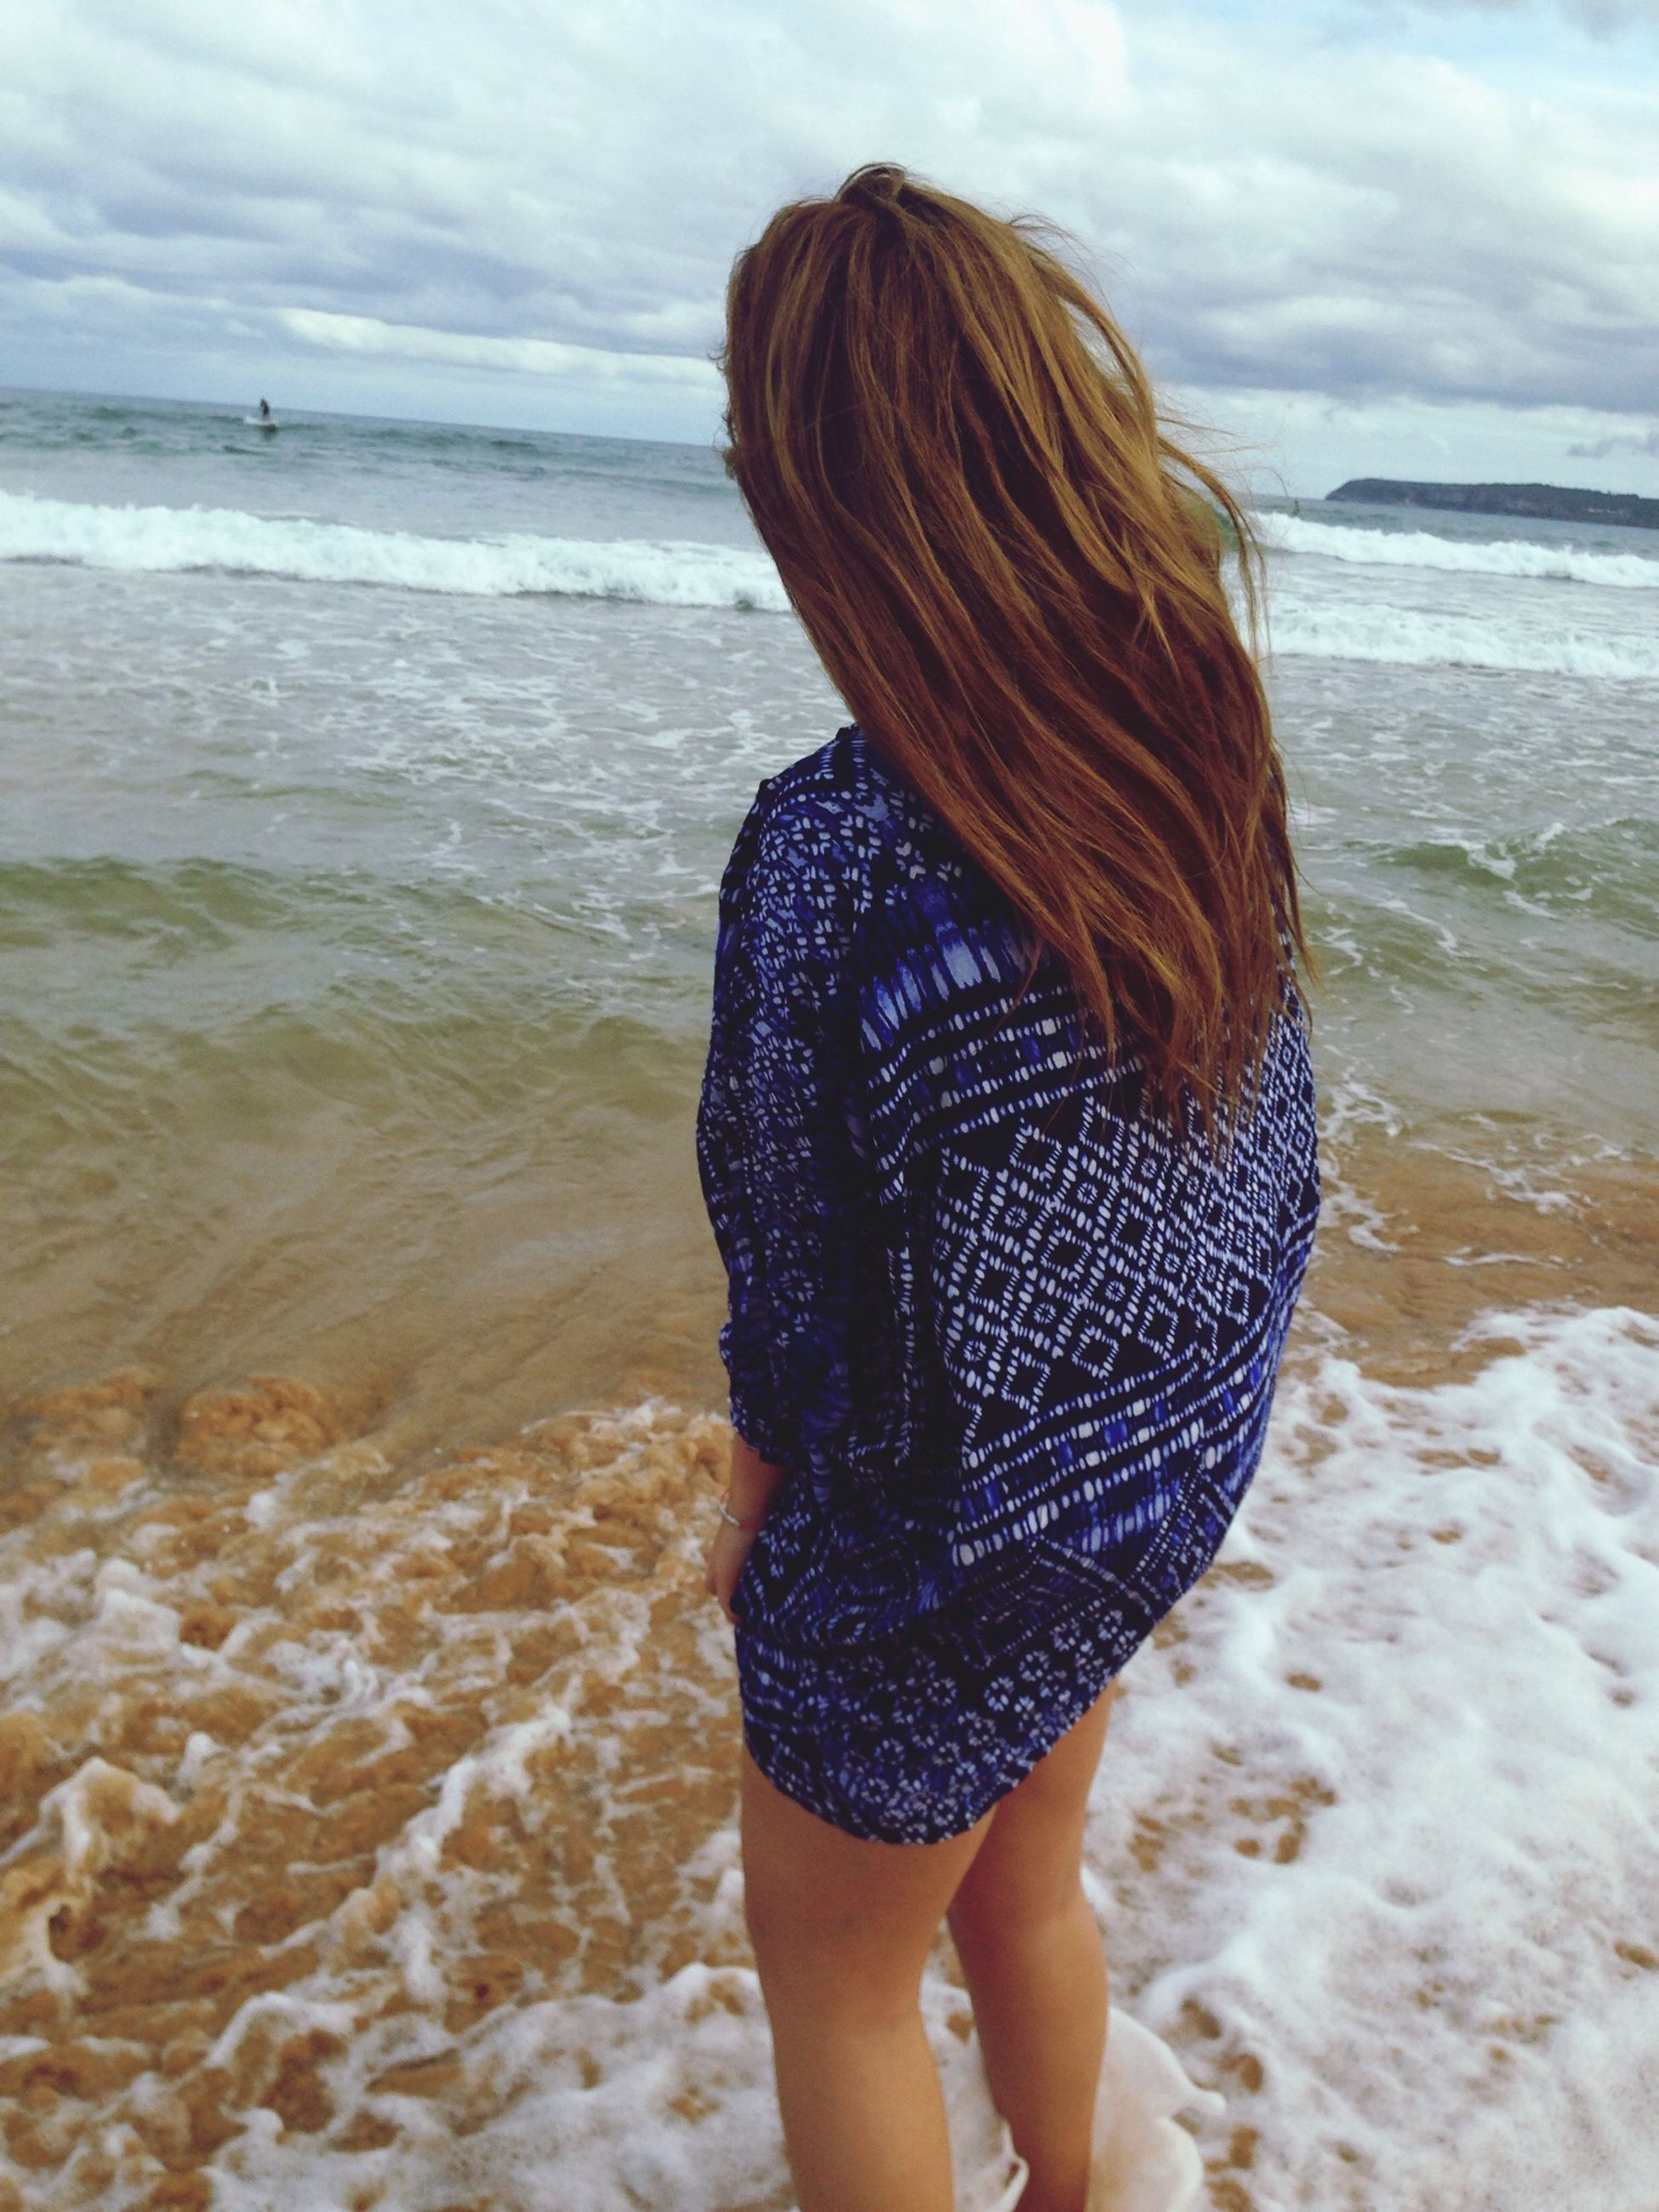 sea, water, beach, rear view, horizon over water, lifestyles, sky, leisure activity, shore, person, vacations, tranquil scene, tranquility, standing, long hair, beauty in nature, scenics, young women